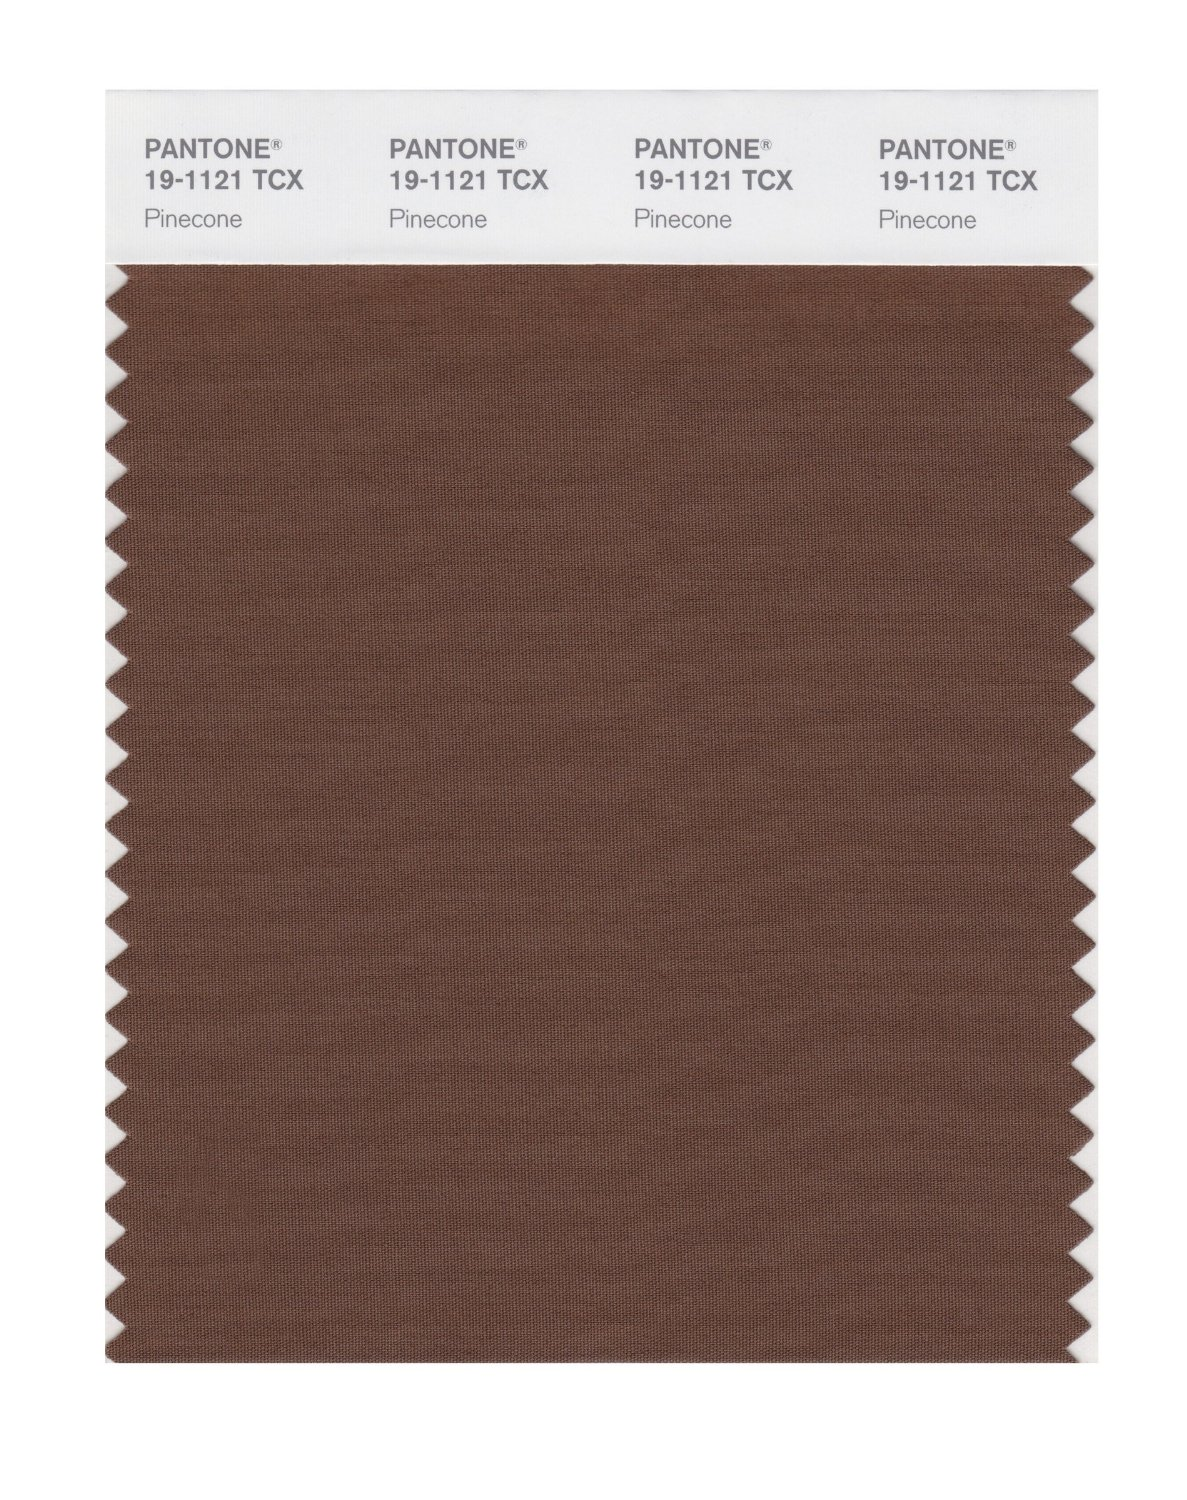 Pantone Smart Swatch 19-1121 Pinecone